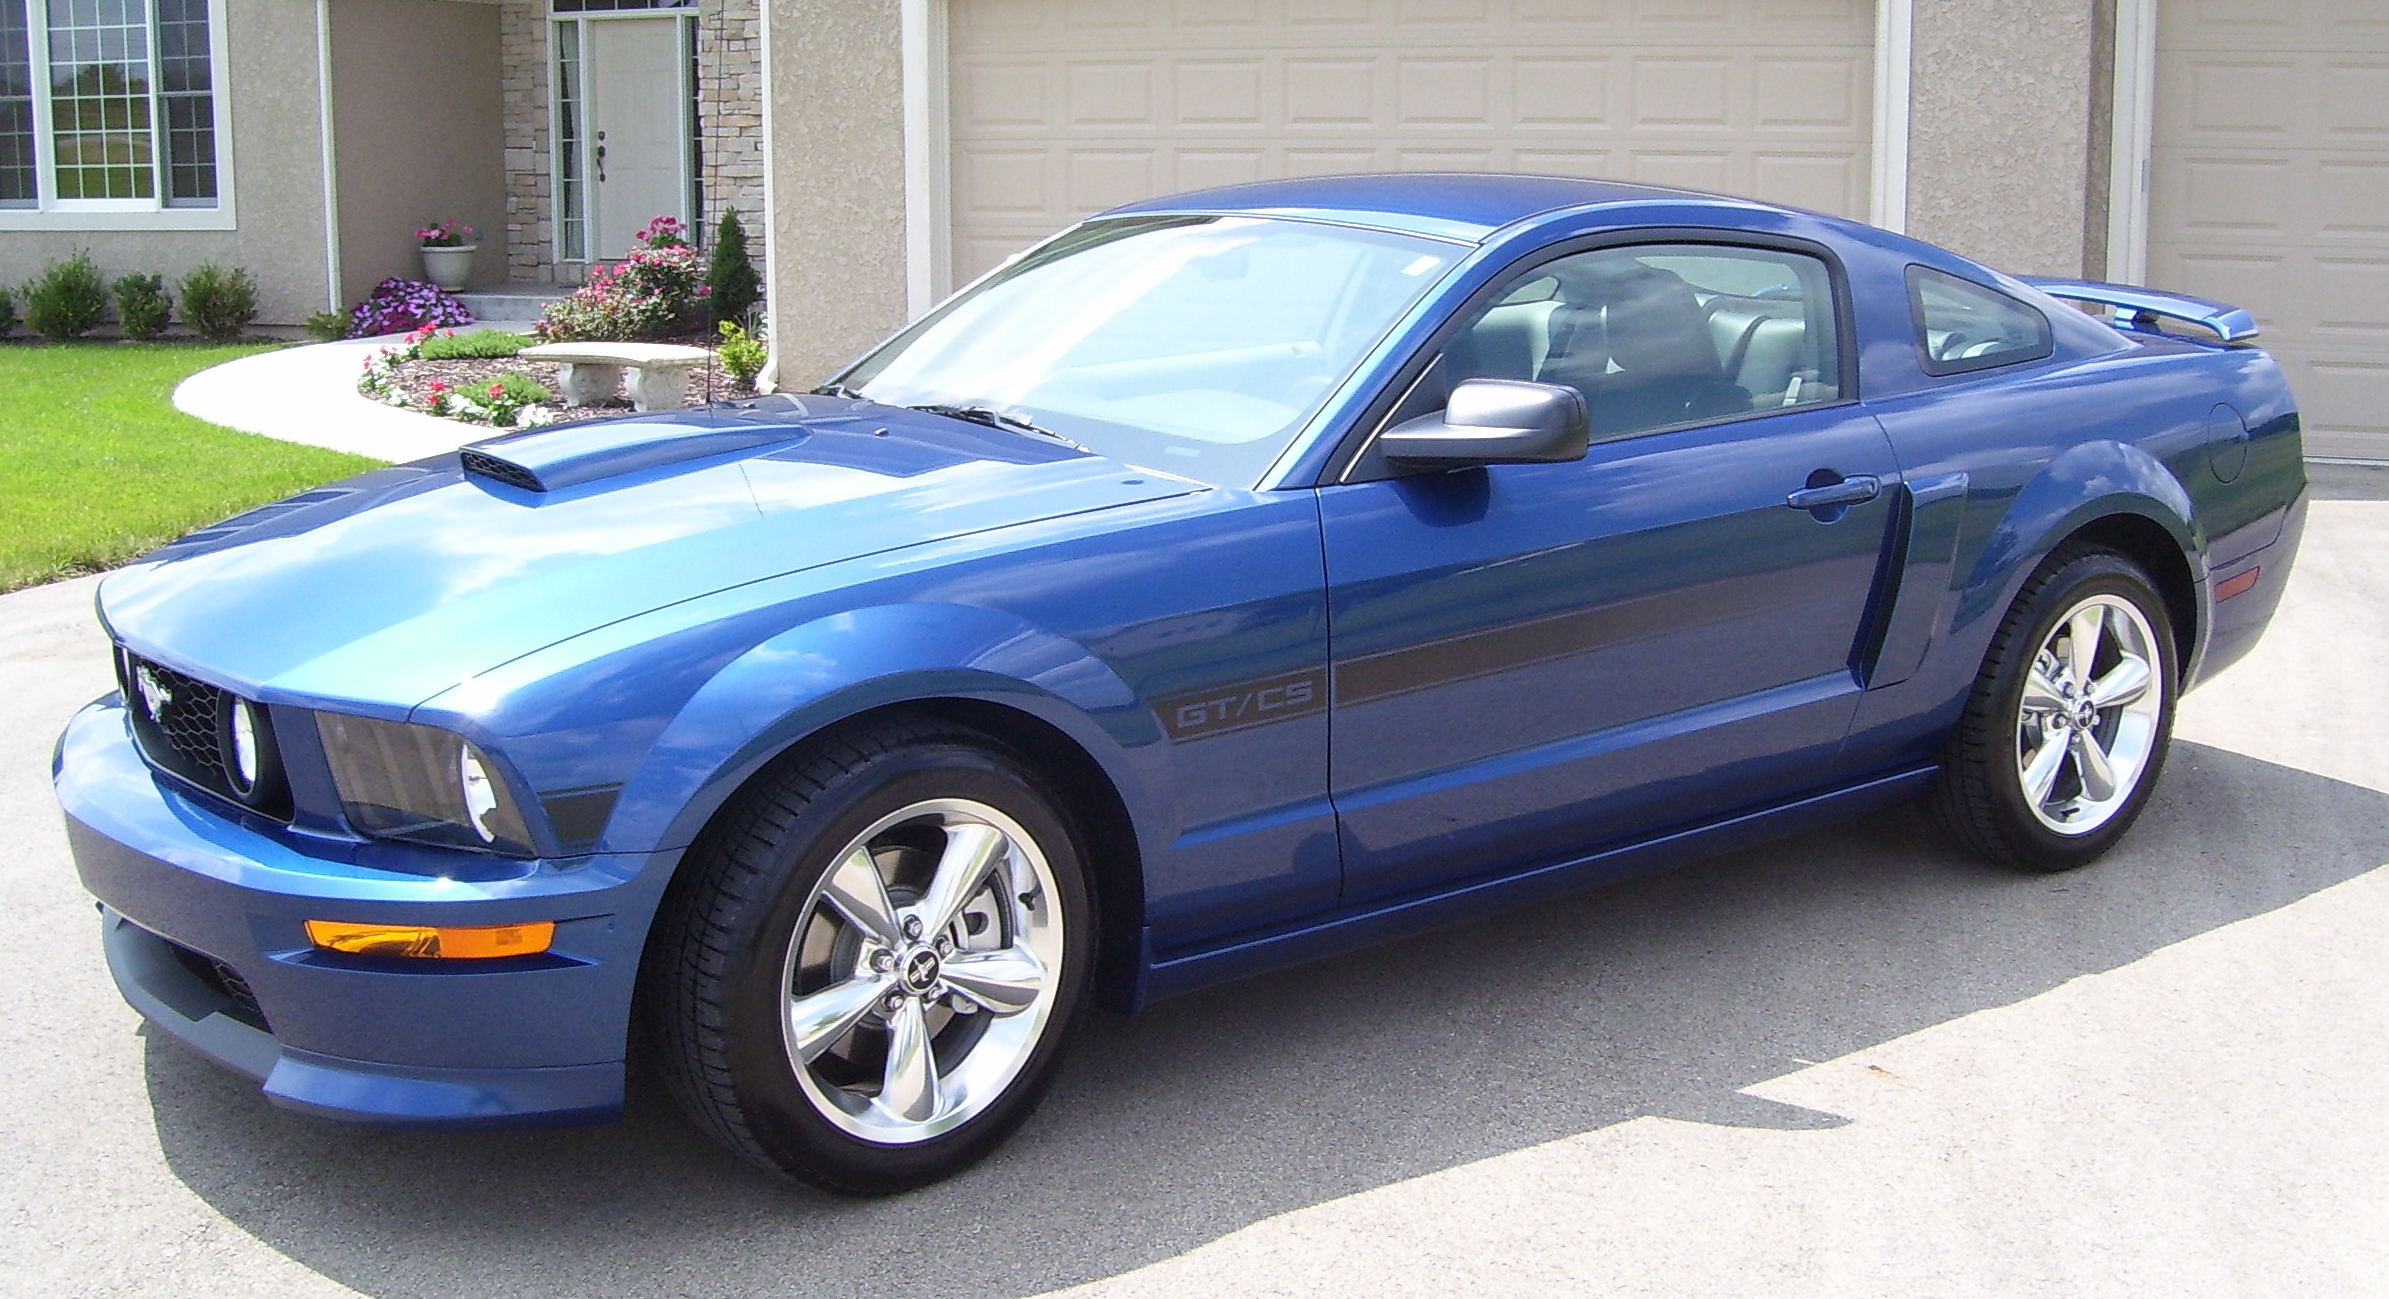 Ryan hogan wikimedia commons the ford mustang